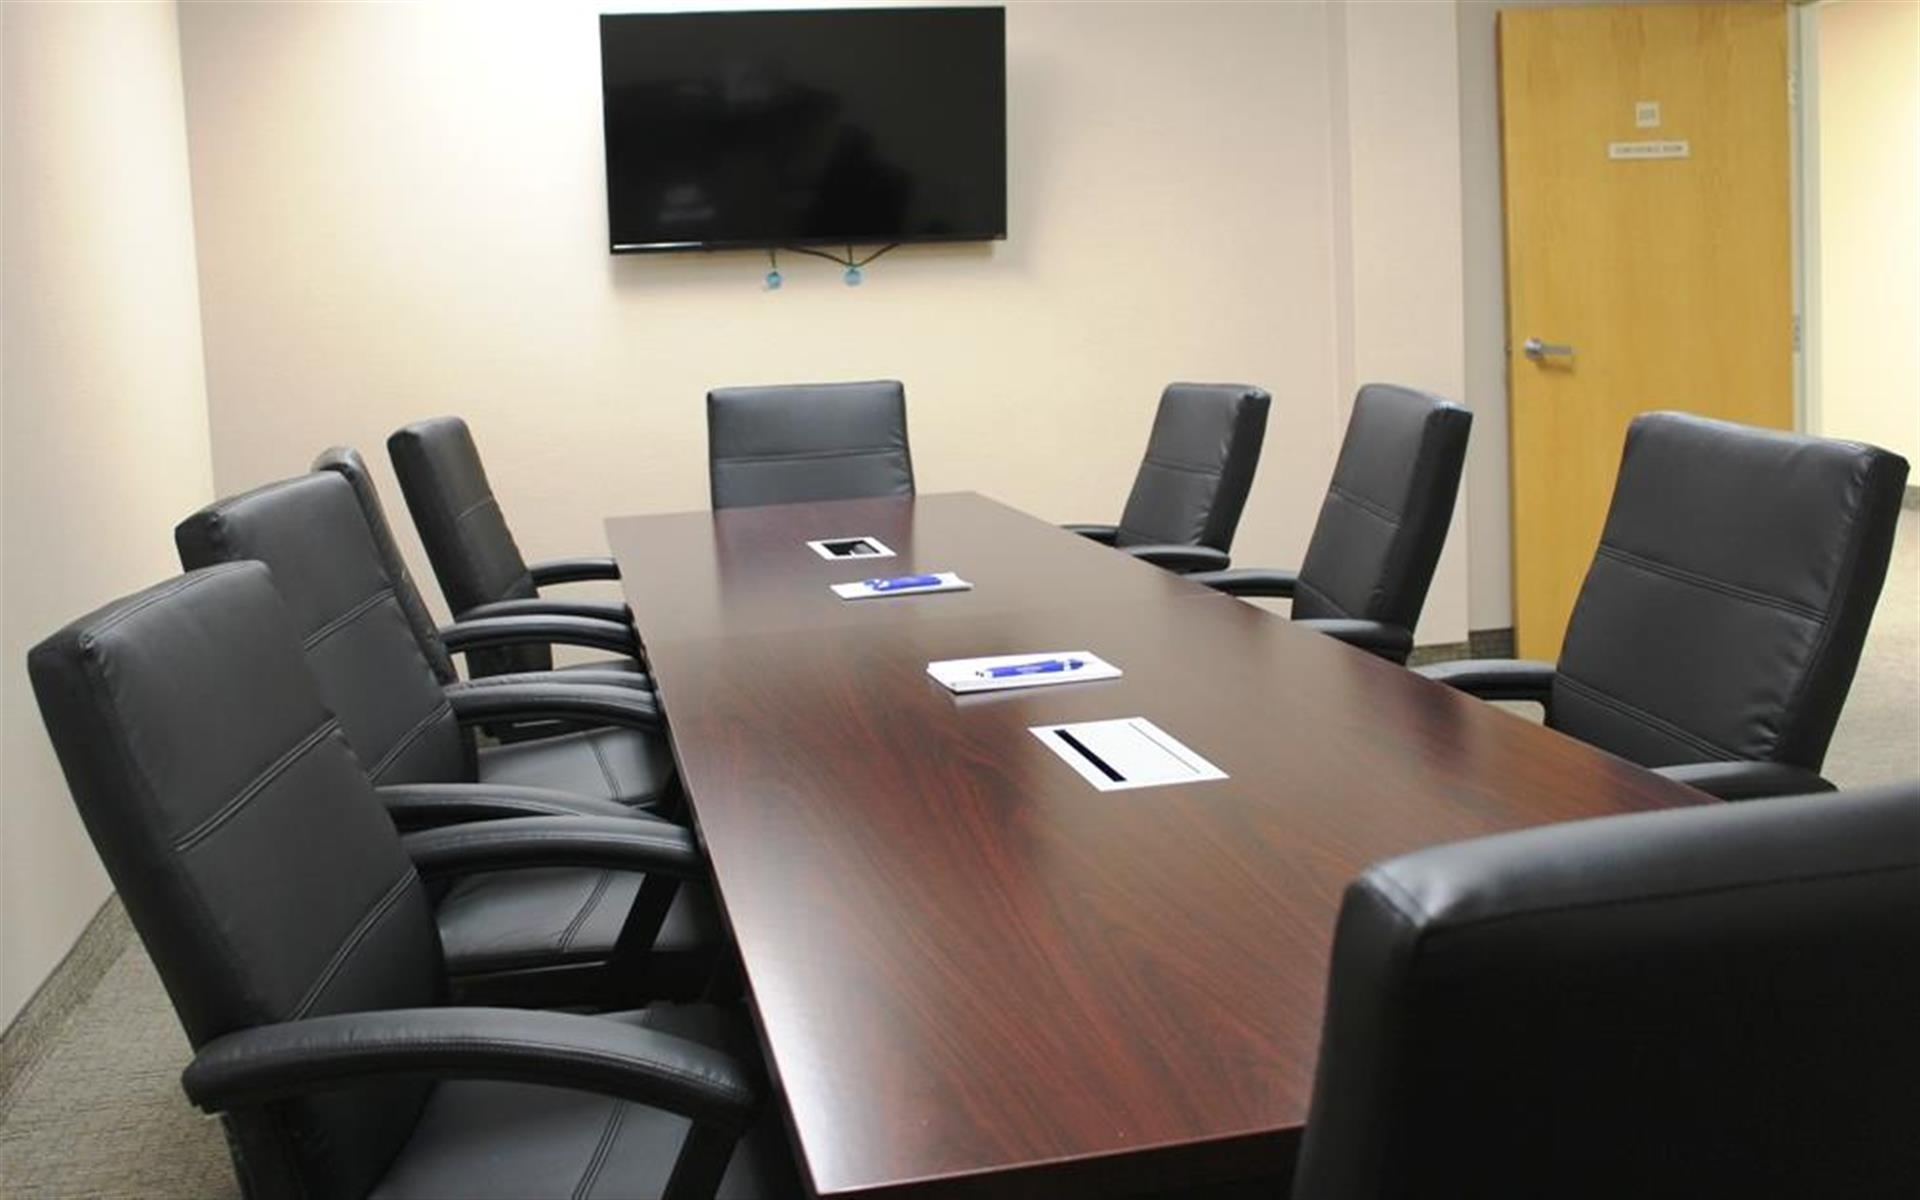 Atrium Executive Center, Mt. Laurel, NJ - Boardroom 205